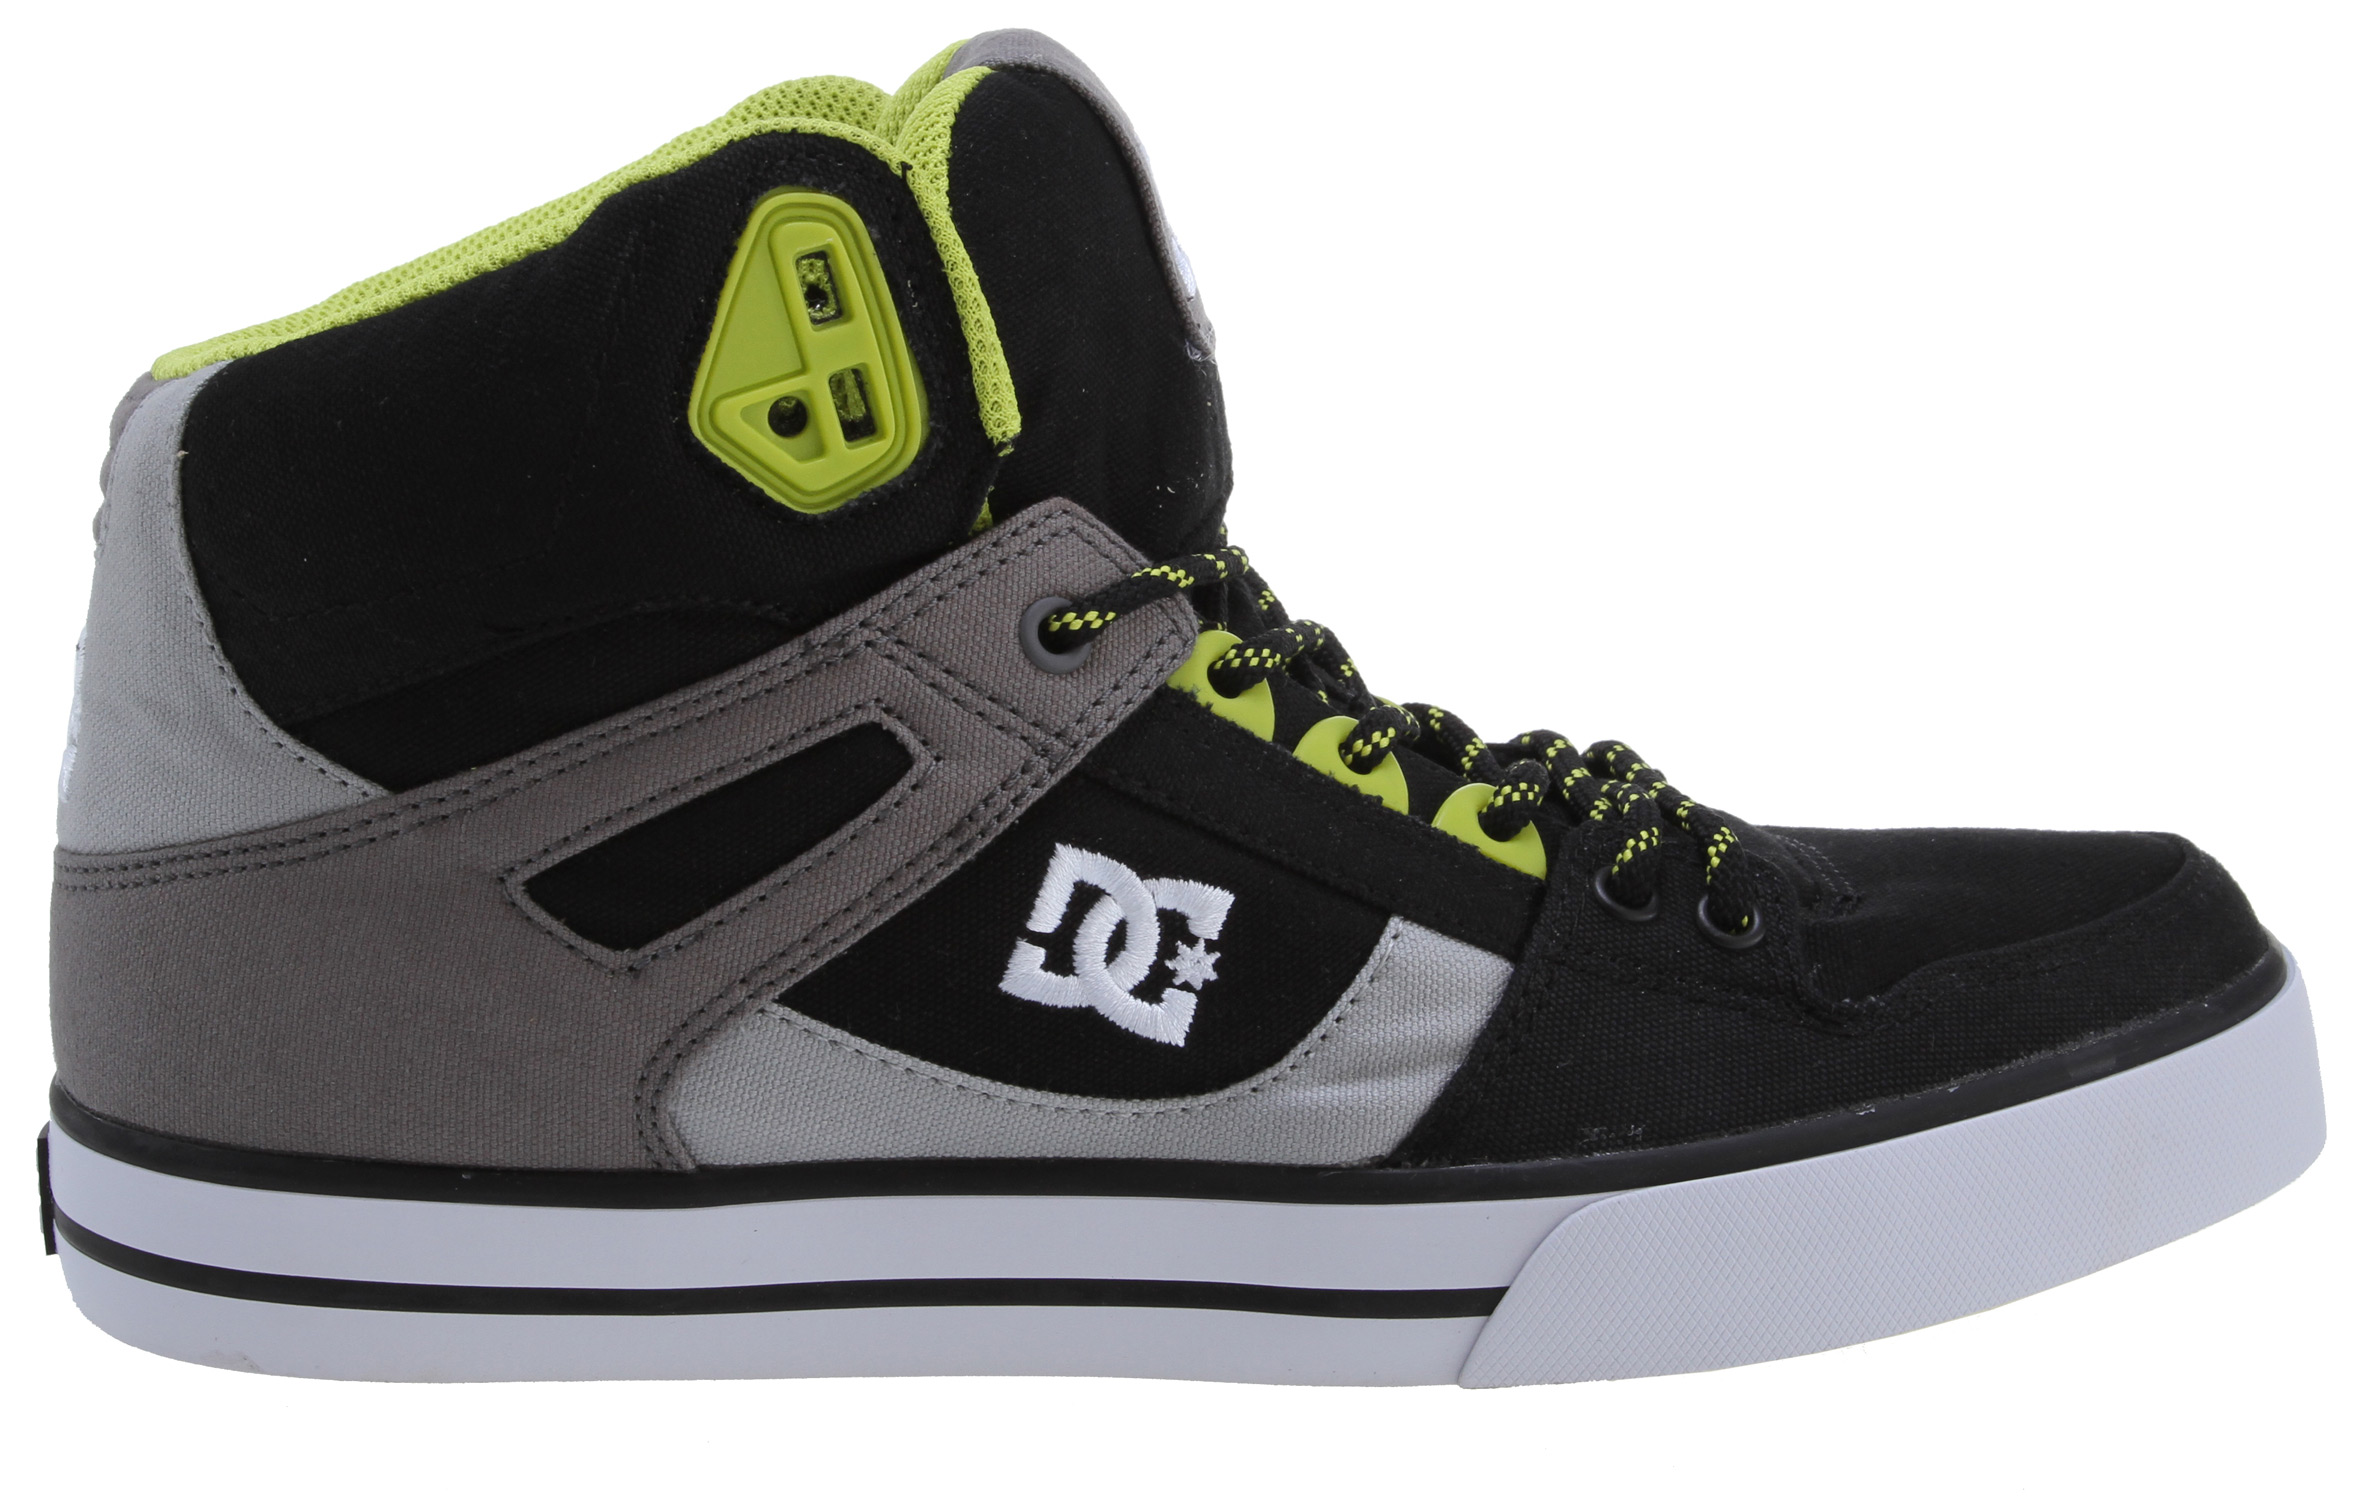 "Skateboard The Spartan gets the canvas treatment, and the result is the Spartan HI WC TX. It has an upper made from canvas, and its tongue and heel collar are foam padded for comfort and support. The upper also features vent holes for breathability, as well as thermoplastic urethane lace eyelets. Key Features of the DC Spartan HI WC T Shoes: All Canvas Upper Foam Padded Tongue And Collar For Comfort And Support Vent Holes For Breathability TPU Eyelets Performance Wrap Cup Sole Construction Abrasion-Resistant Sticky Rubber Outsole With DC's Trademarked ""Pill Pattern"" Tread - $47.95"